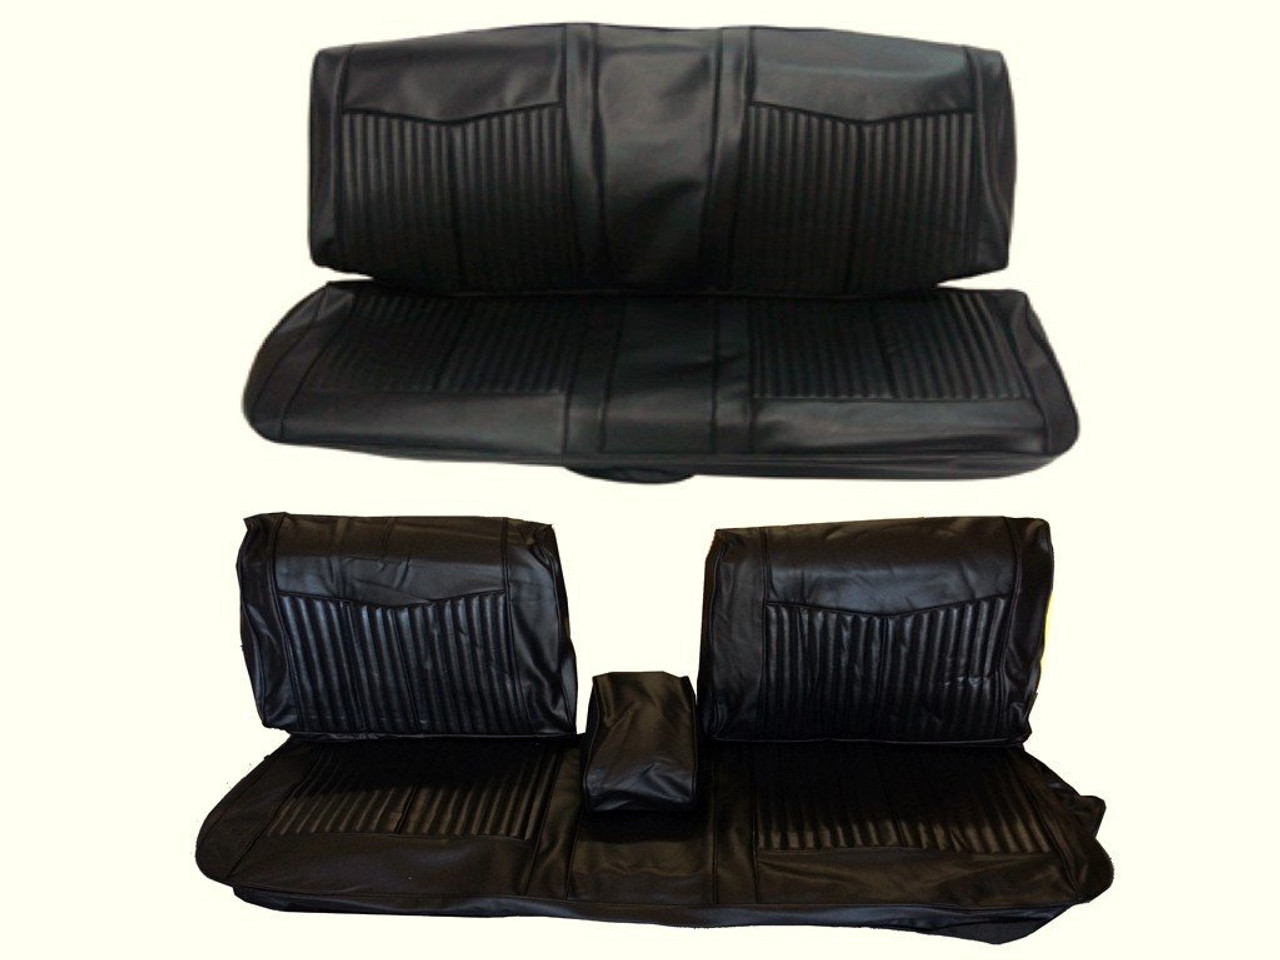 Wondrous 6611 Ben Mopar 1970 Dart Duster Front Split Bench Seat Cover Machost Co Dining Chair Design Ideas Machostcouk